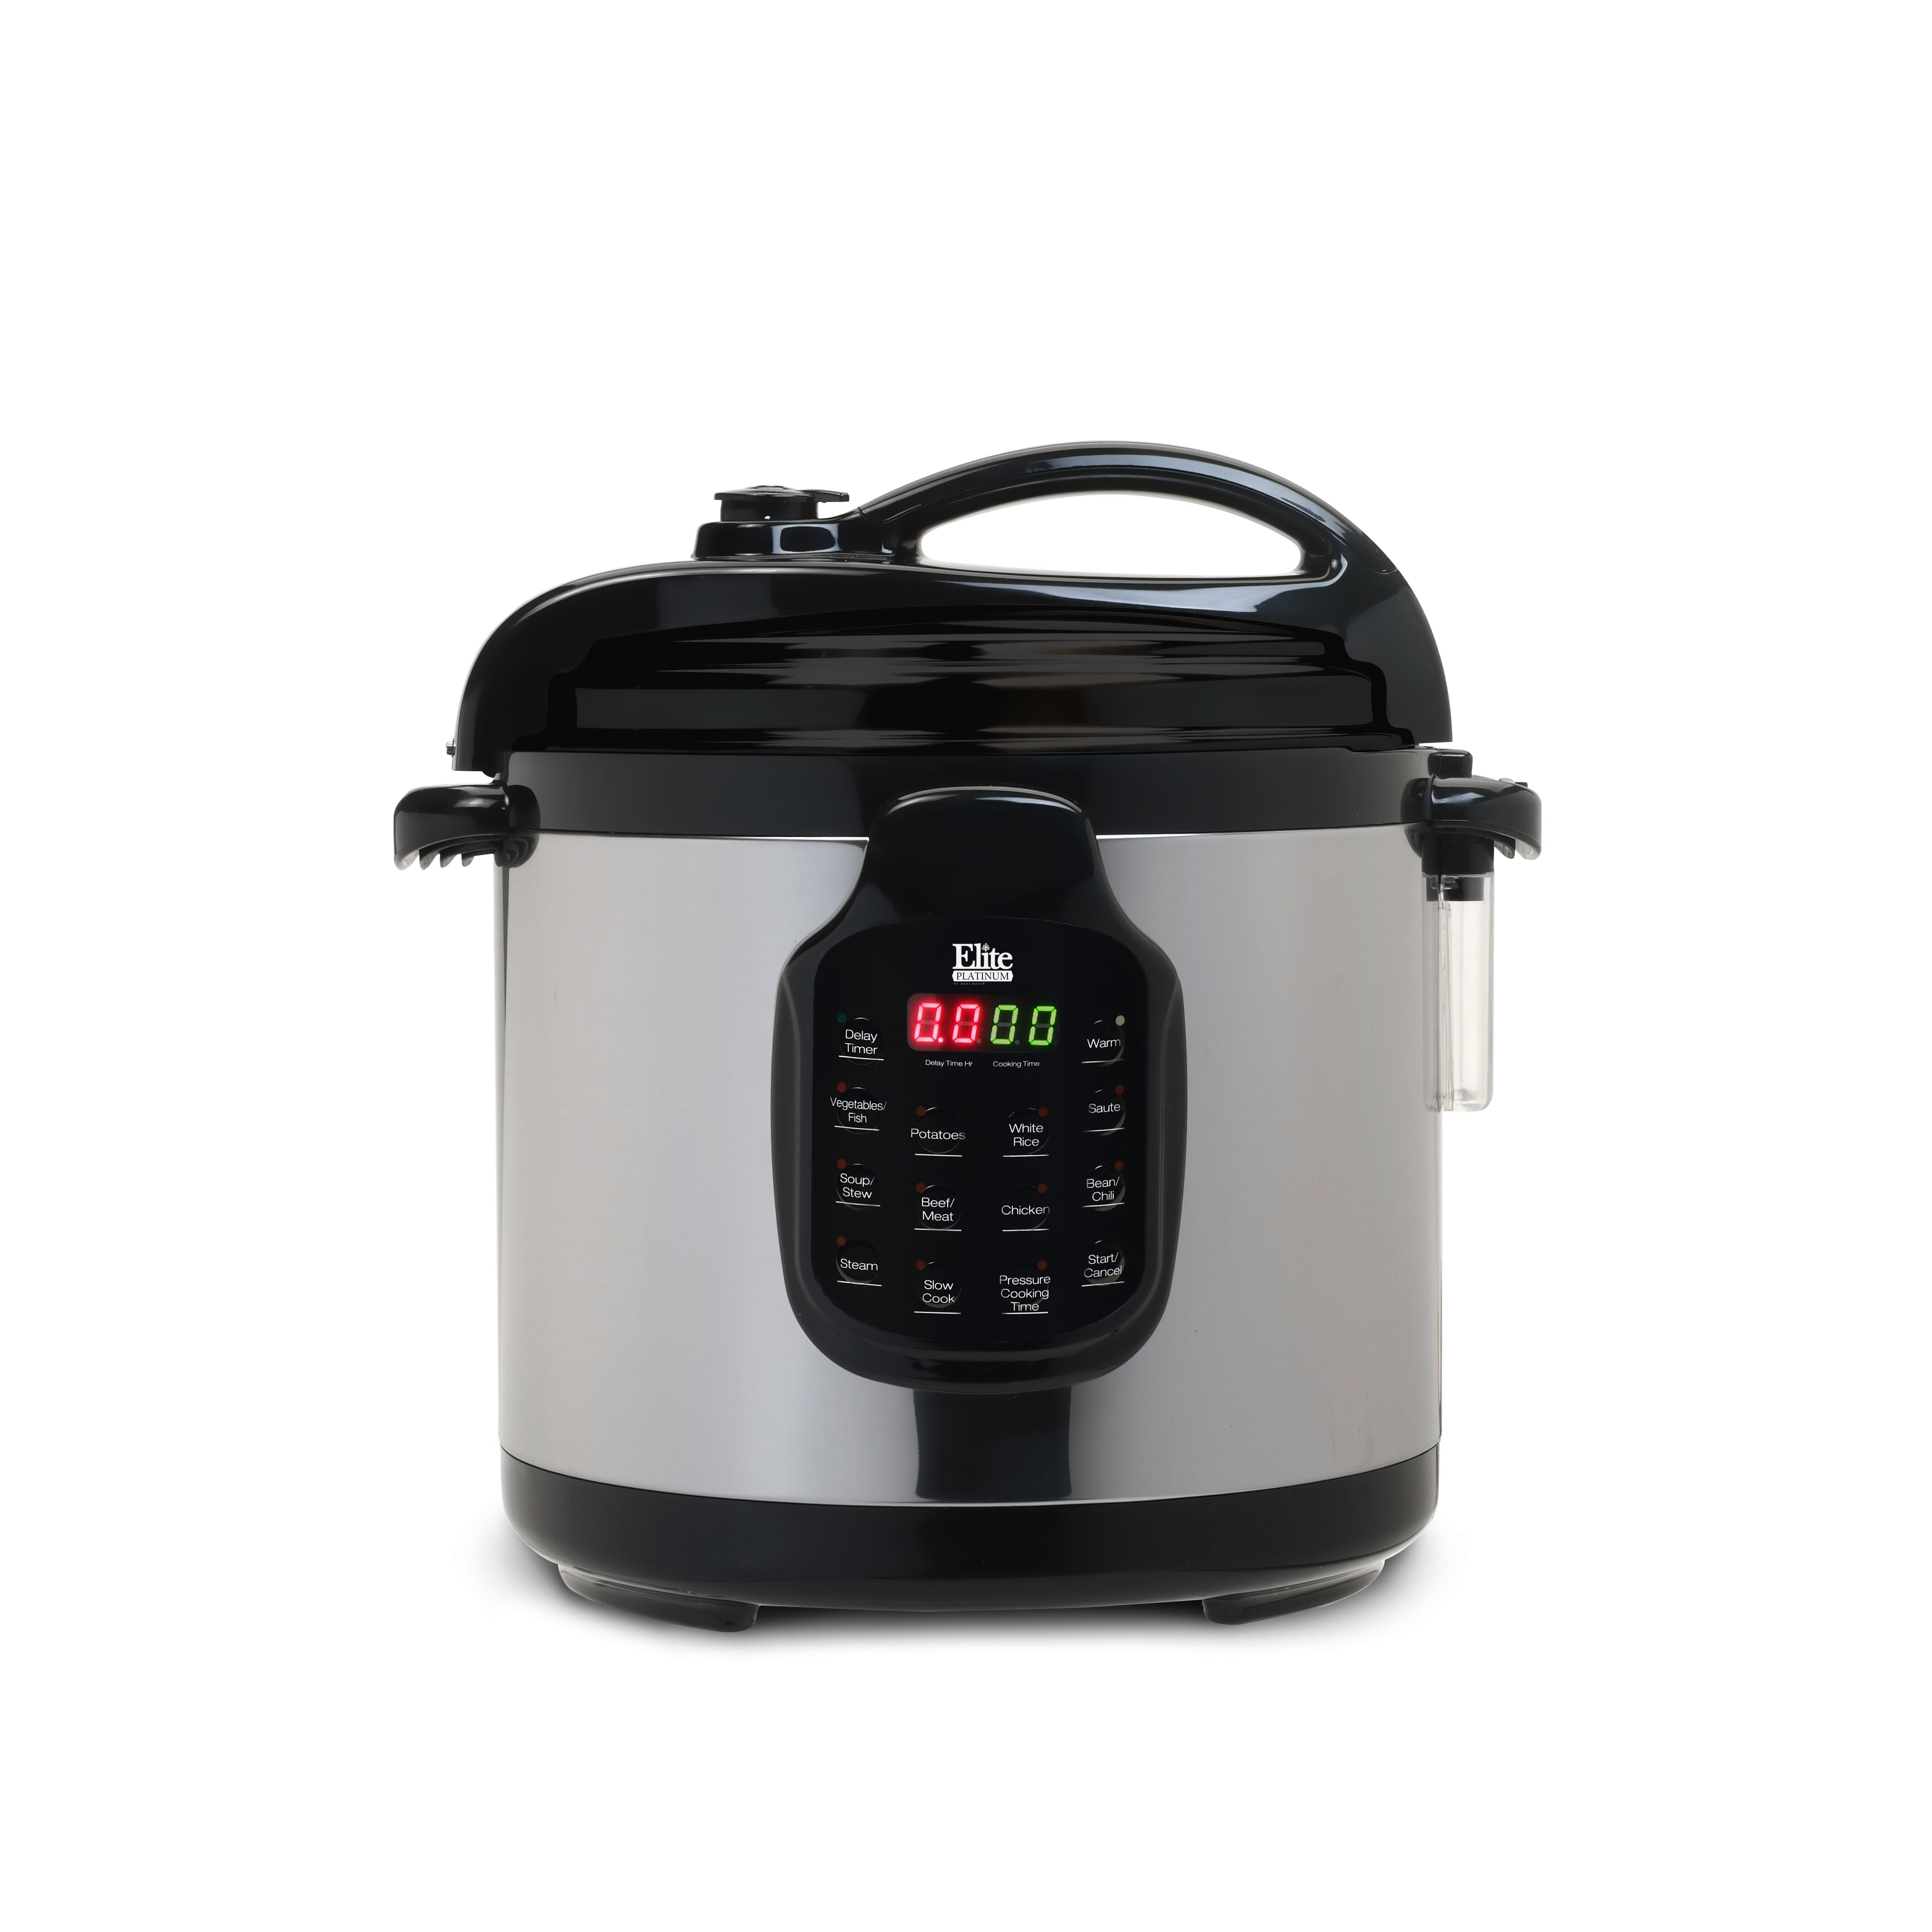 Pressure cooker bed bath beyond - Elite By Maxi Matic Platinum 6 Quart Electric Stainless Steel Pressure Cooker With Stainless